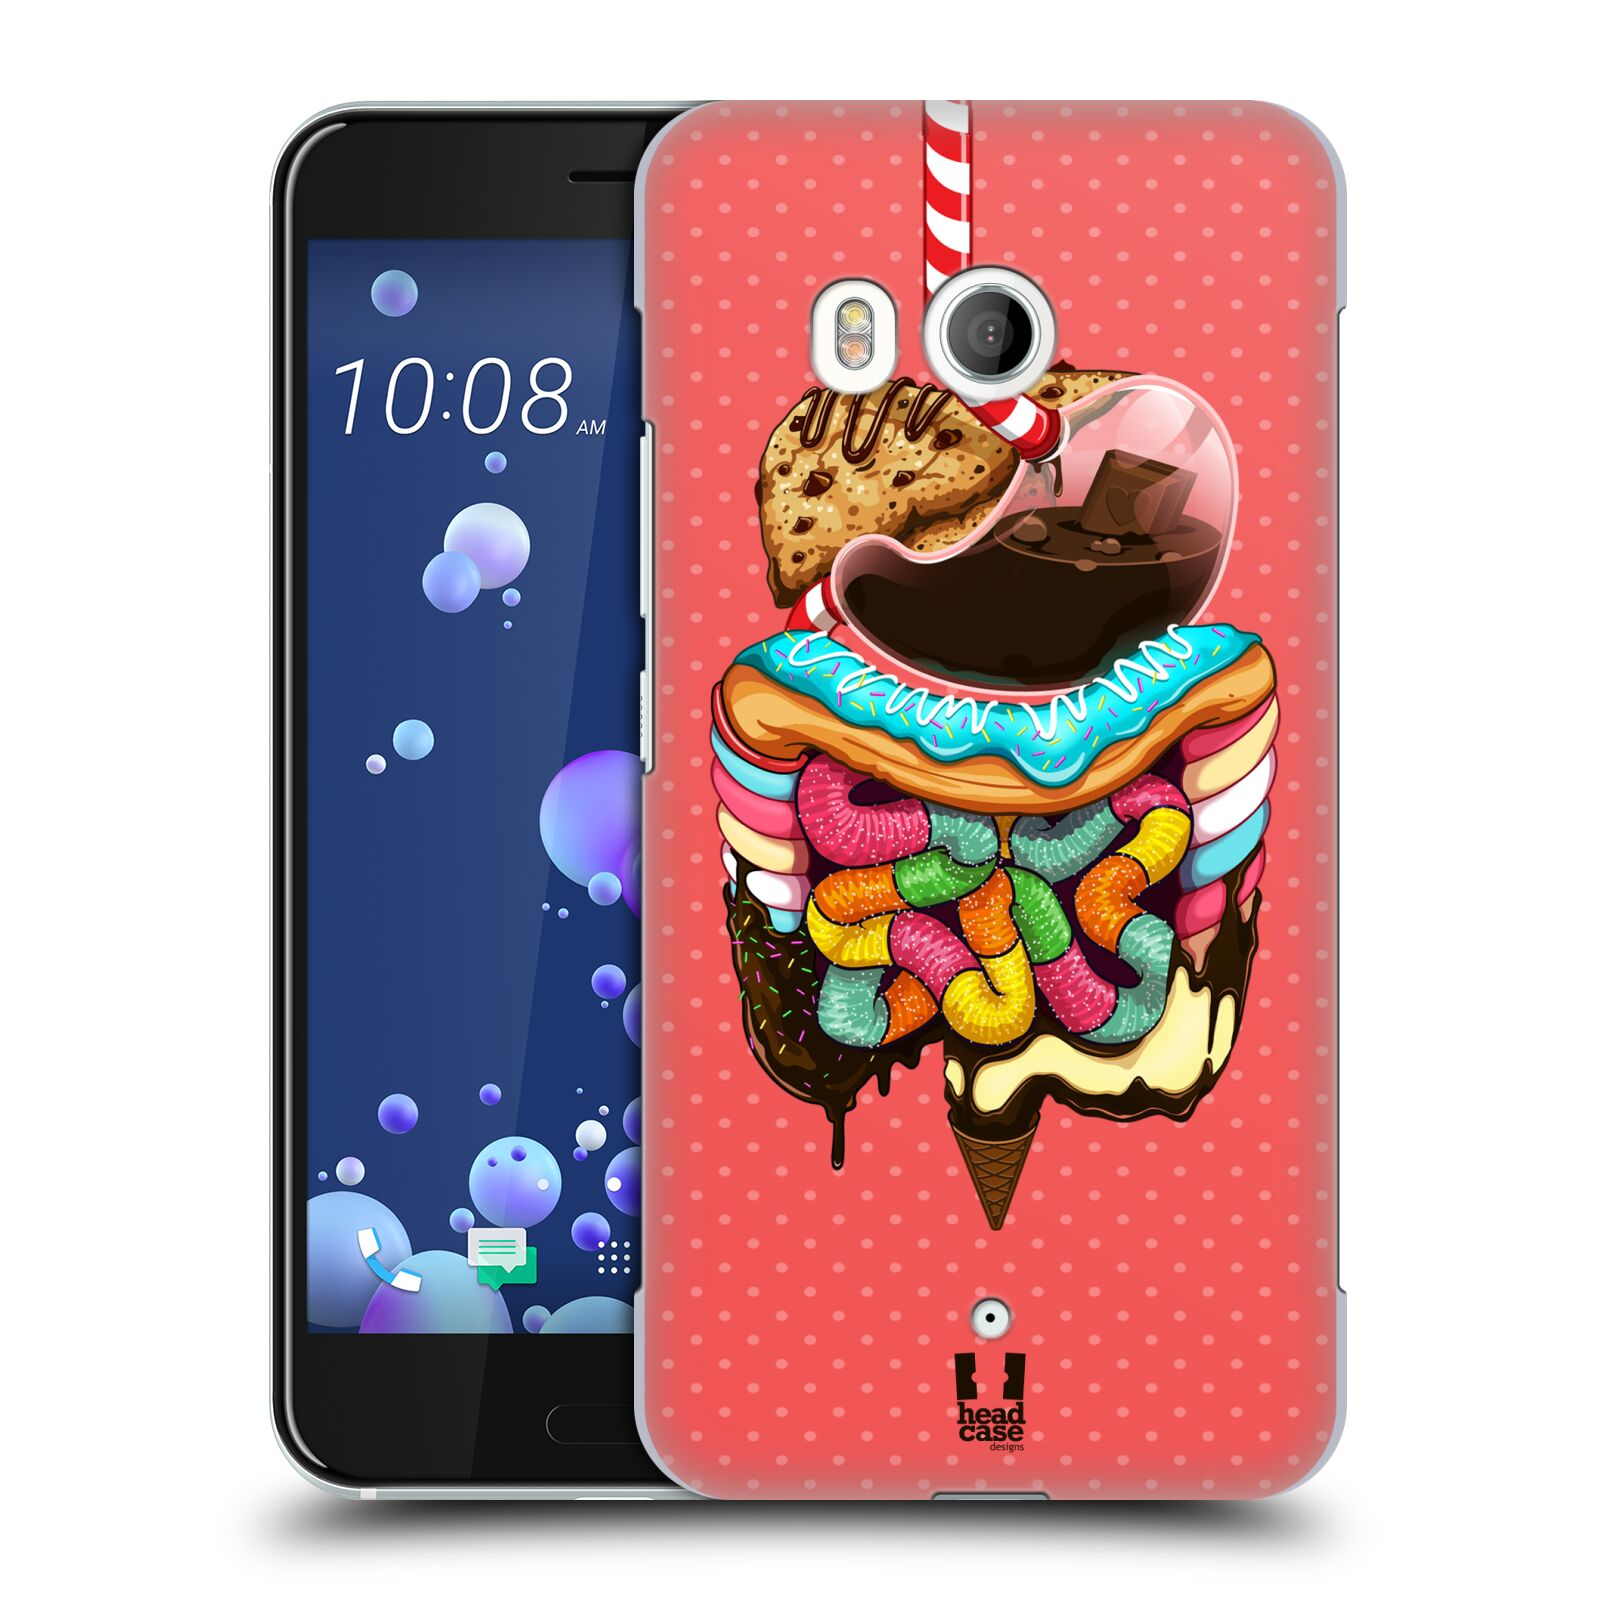 Head Case Designs Digest Human Anatomy Case Cover for HTC Desire 816 ...